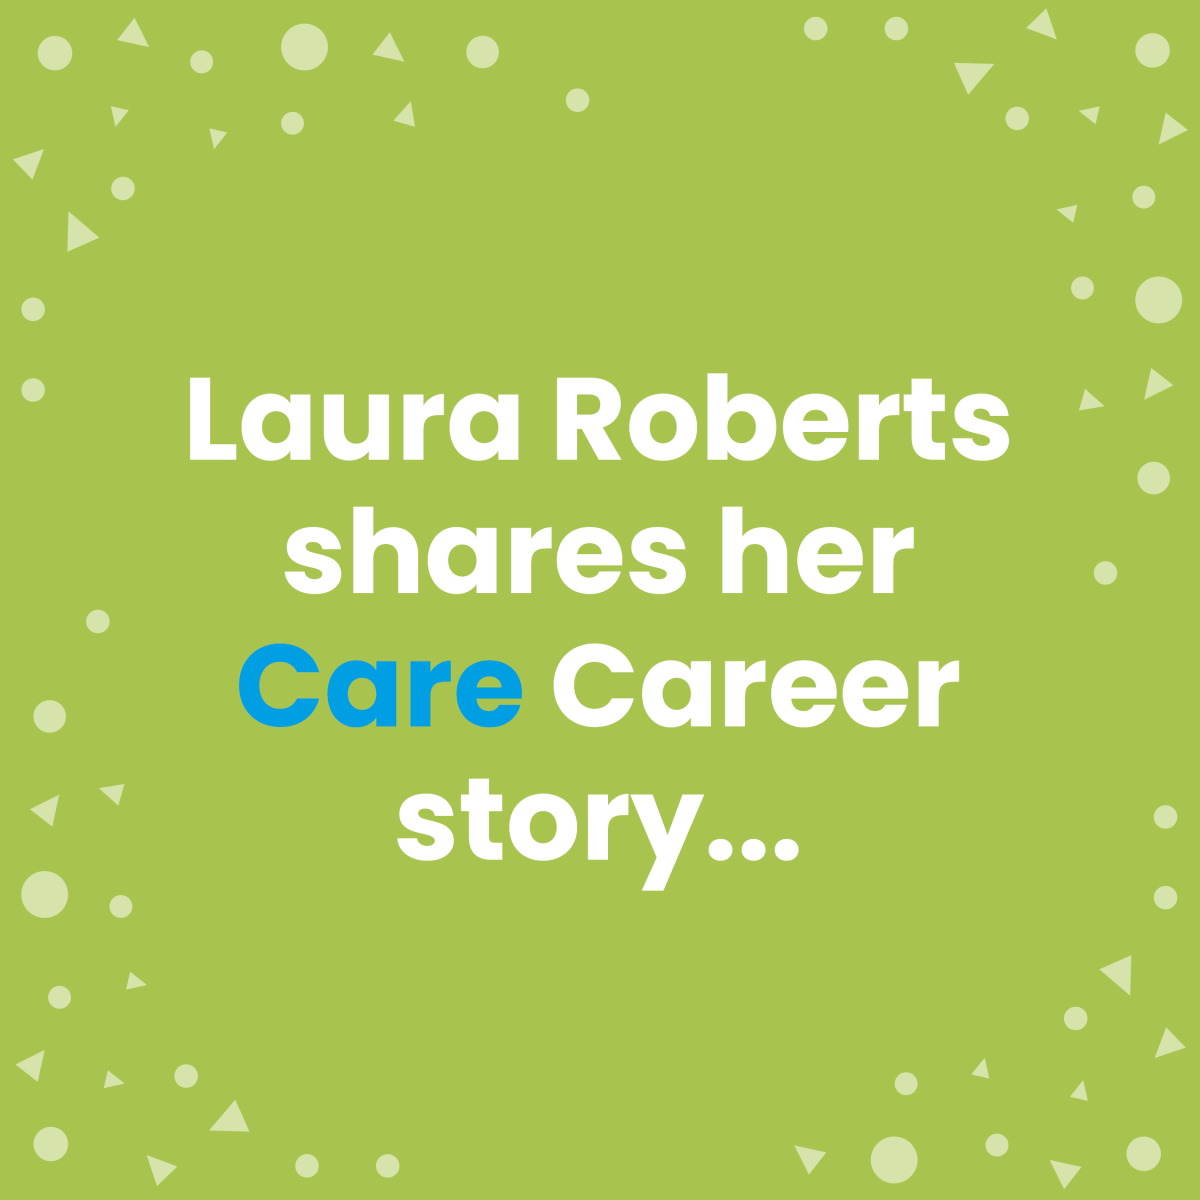 Laura Roberts shares her Care Career story…